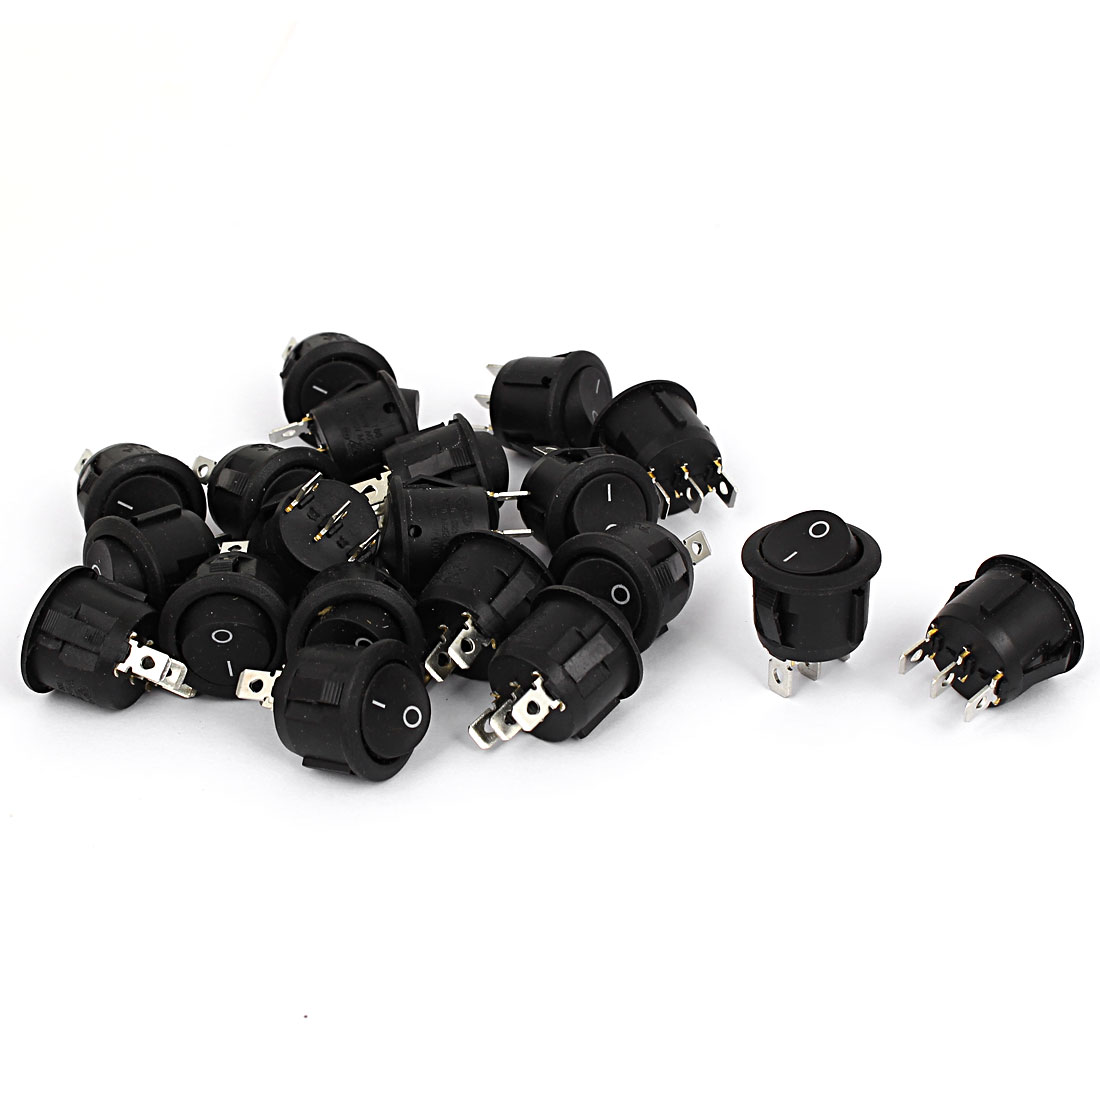 AC 6A/250V 10A/125V 3 Terminals SPDT NO-OFF Oval Boat Rocker Switch Black 20 Pcs